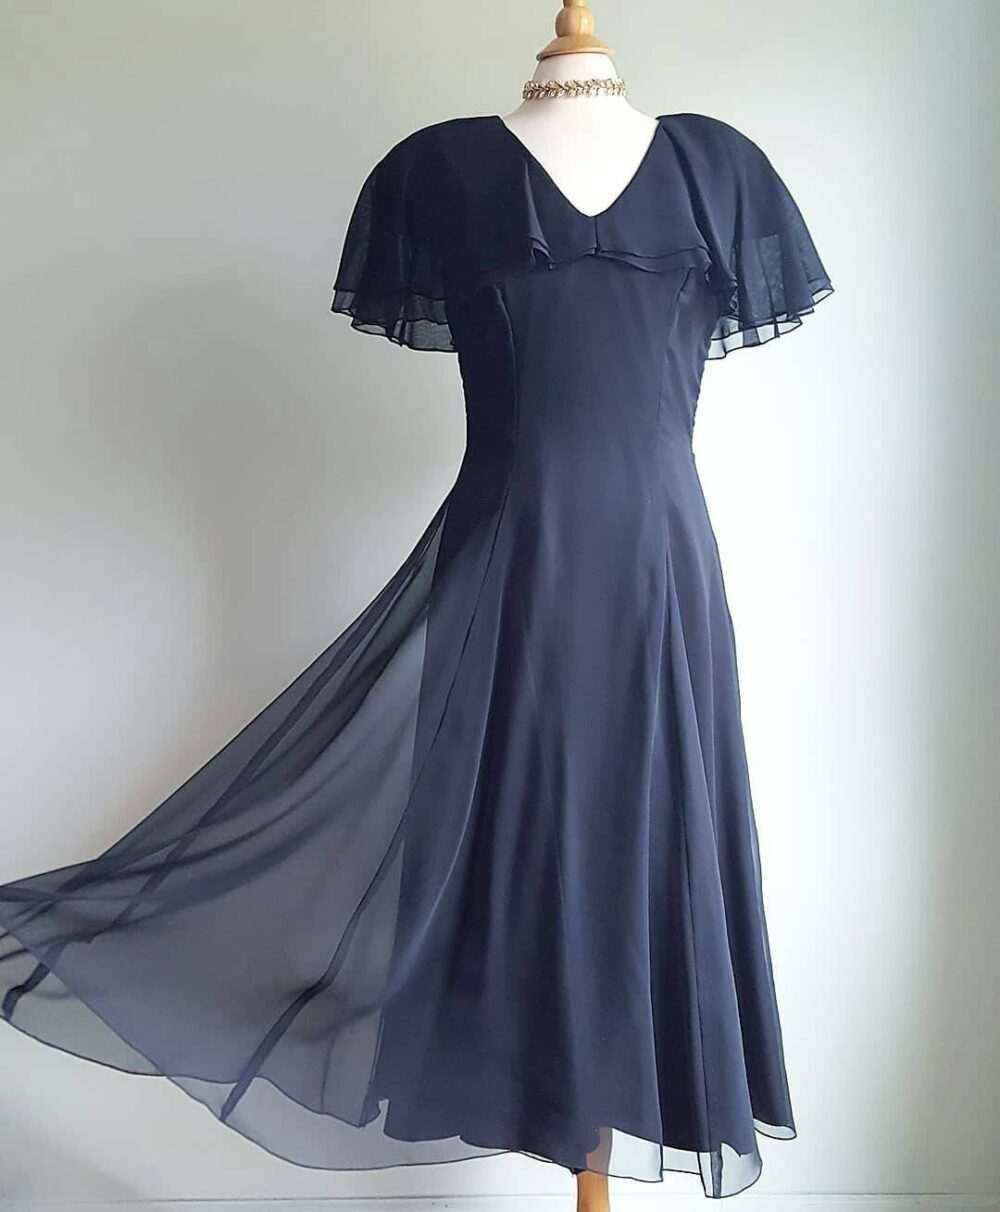 Vintage 1980S Does 1930S Black Chiffon Long Dress, Gown, Formal, Wedding, Party, Cocktail, Flapper